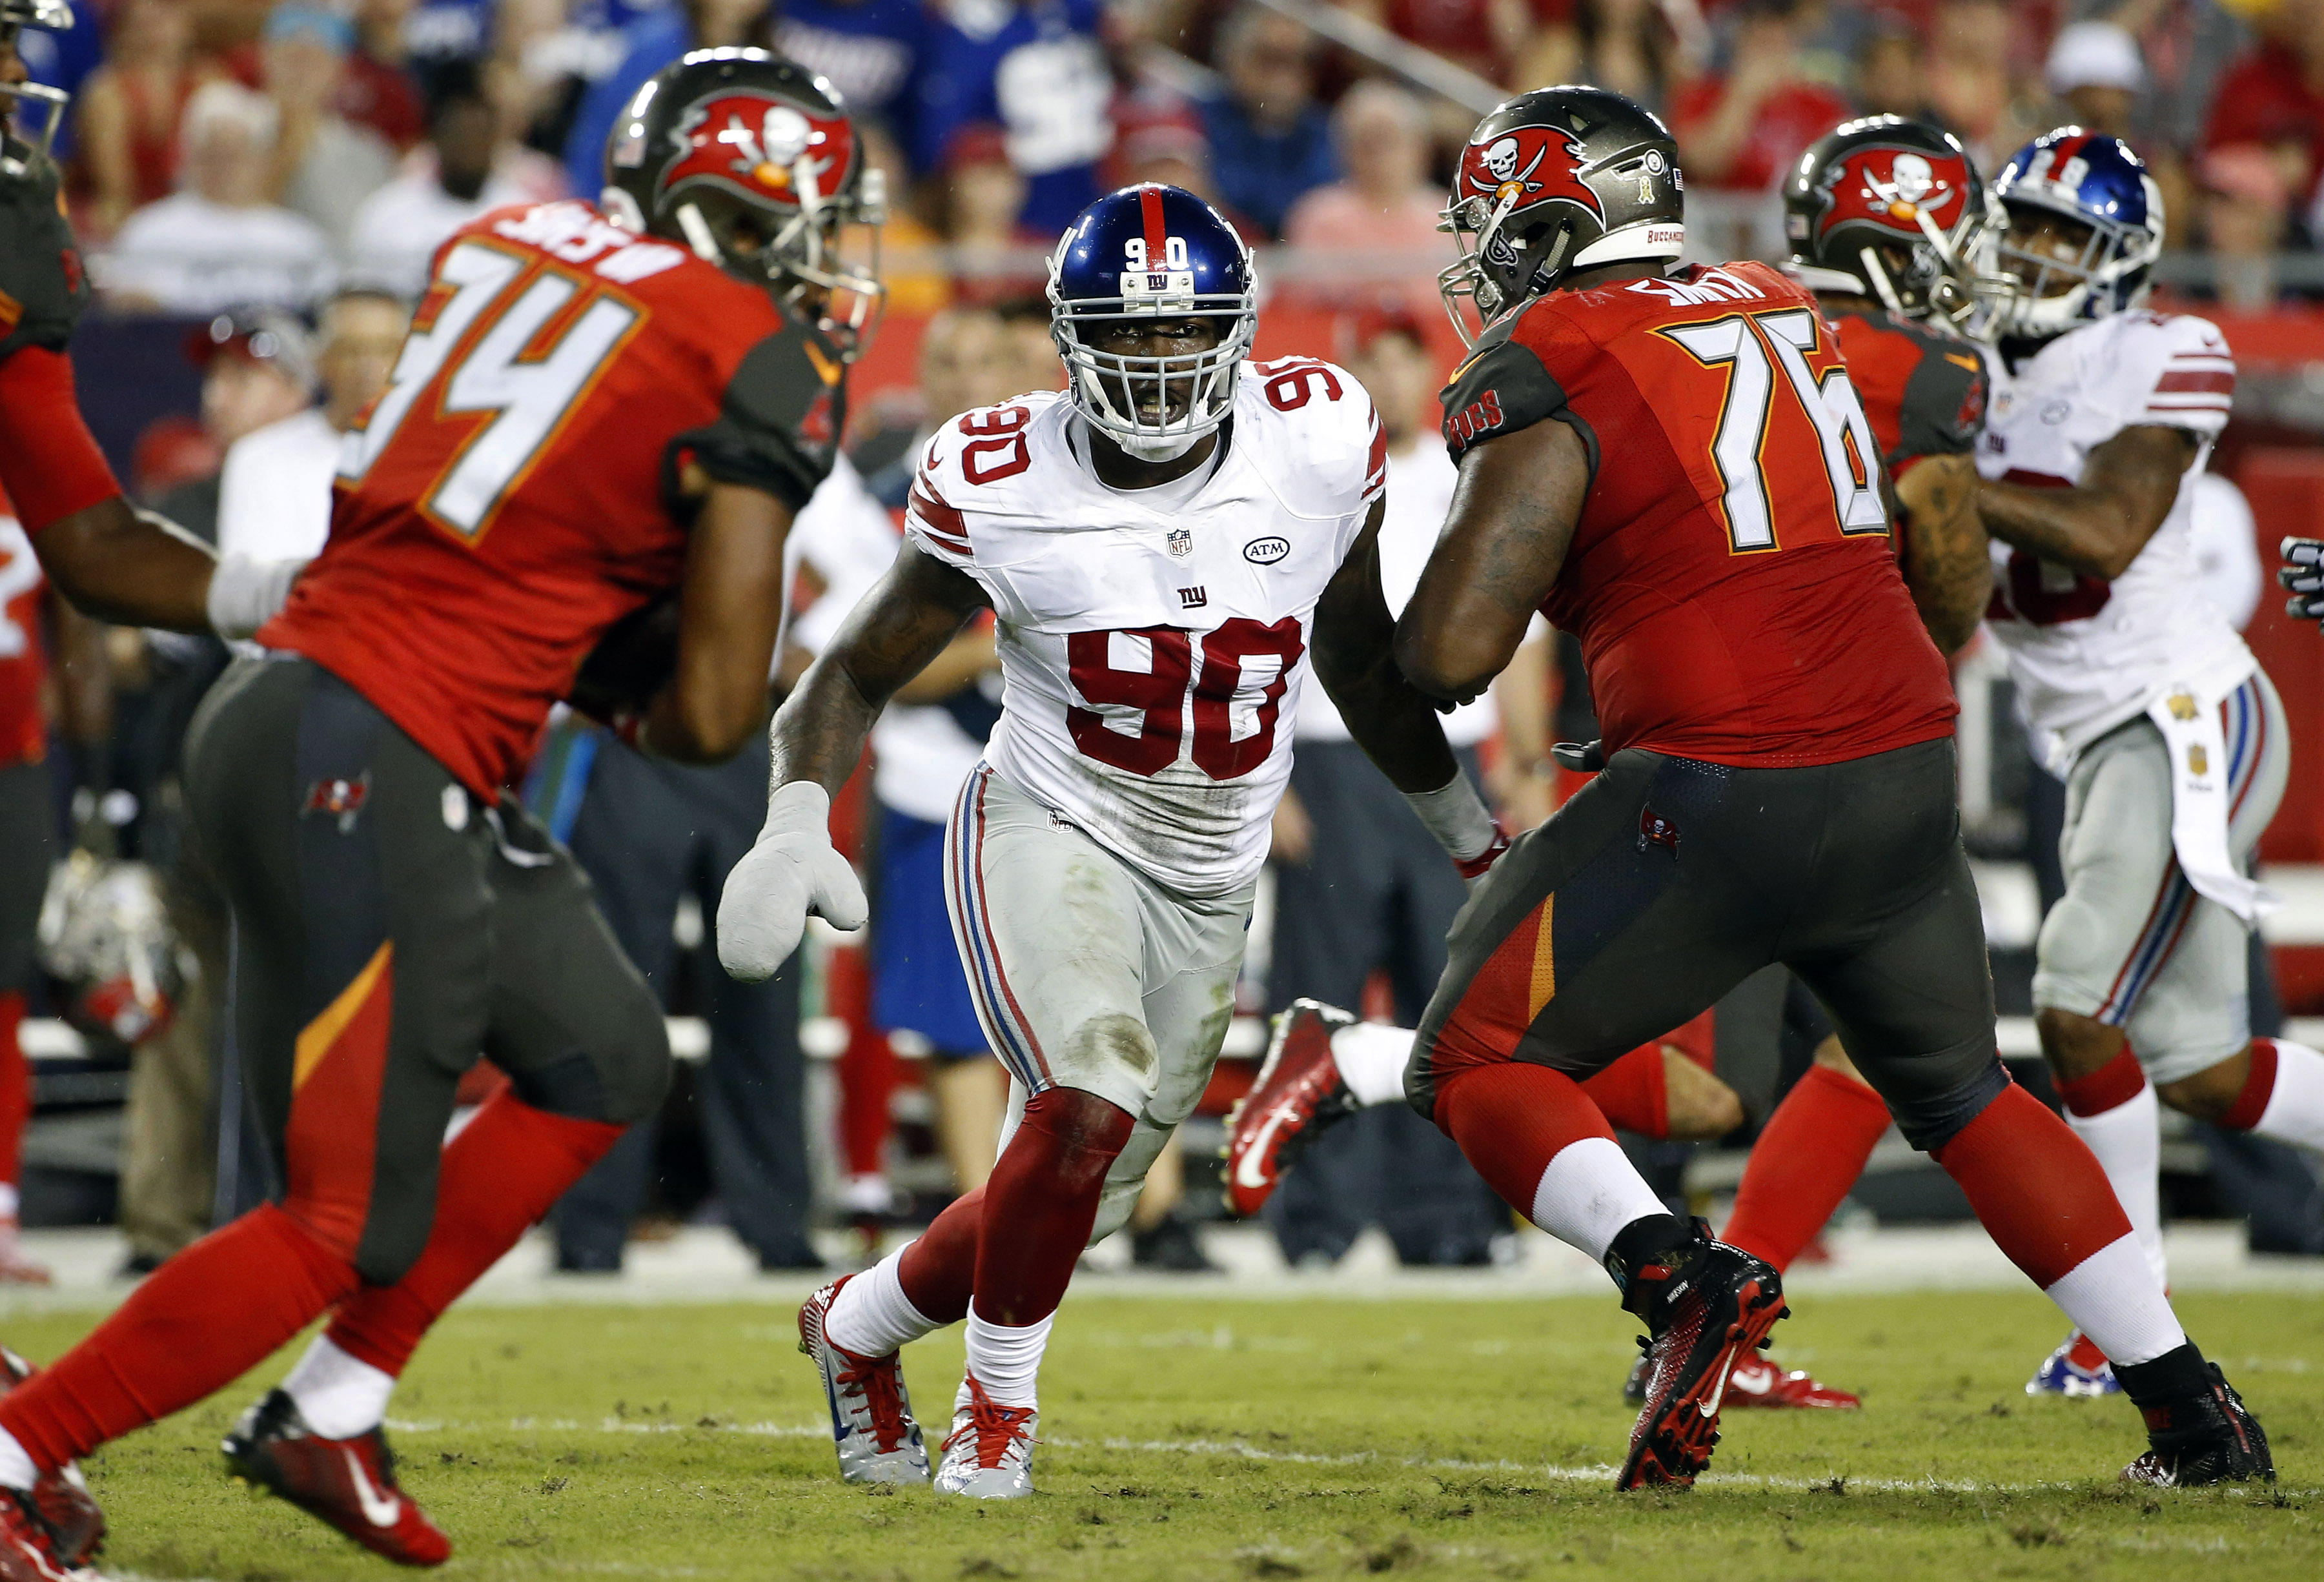 New York Giants defensive end Jason Pierre-Paul (90) slips between the Tampa Bay Buccaneers offense during the third quarter of an NFL football game Sunday, Nov. 8, 2015, in Tampa, Fla. Pierre-Paul is playing in his first game since damaging his hand in a